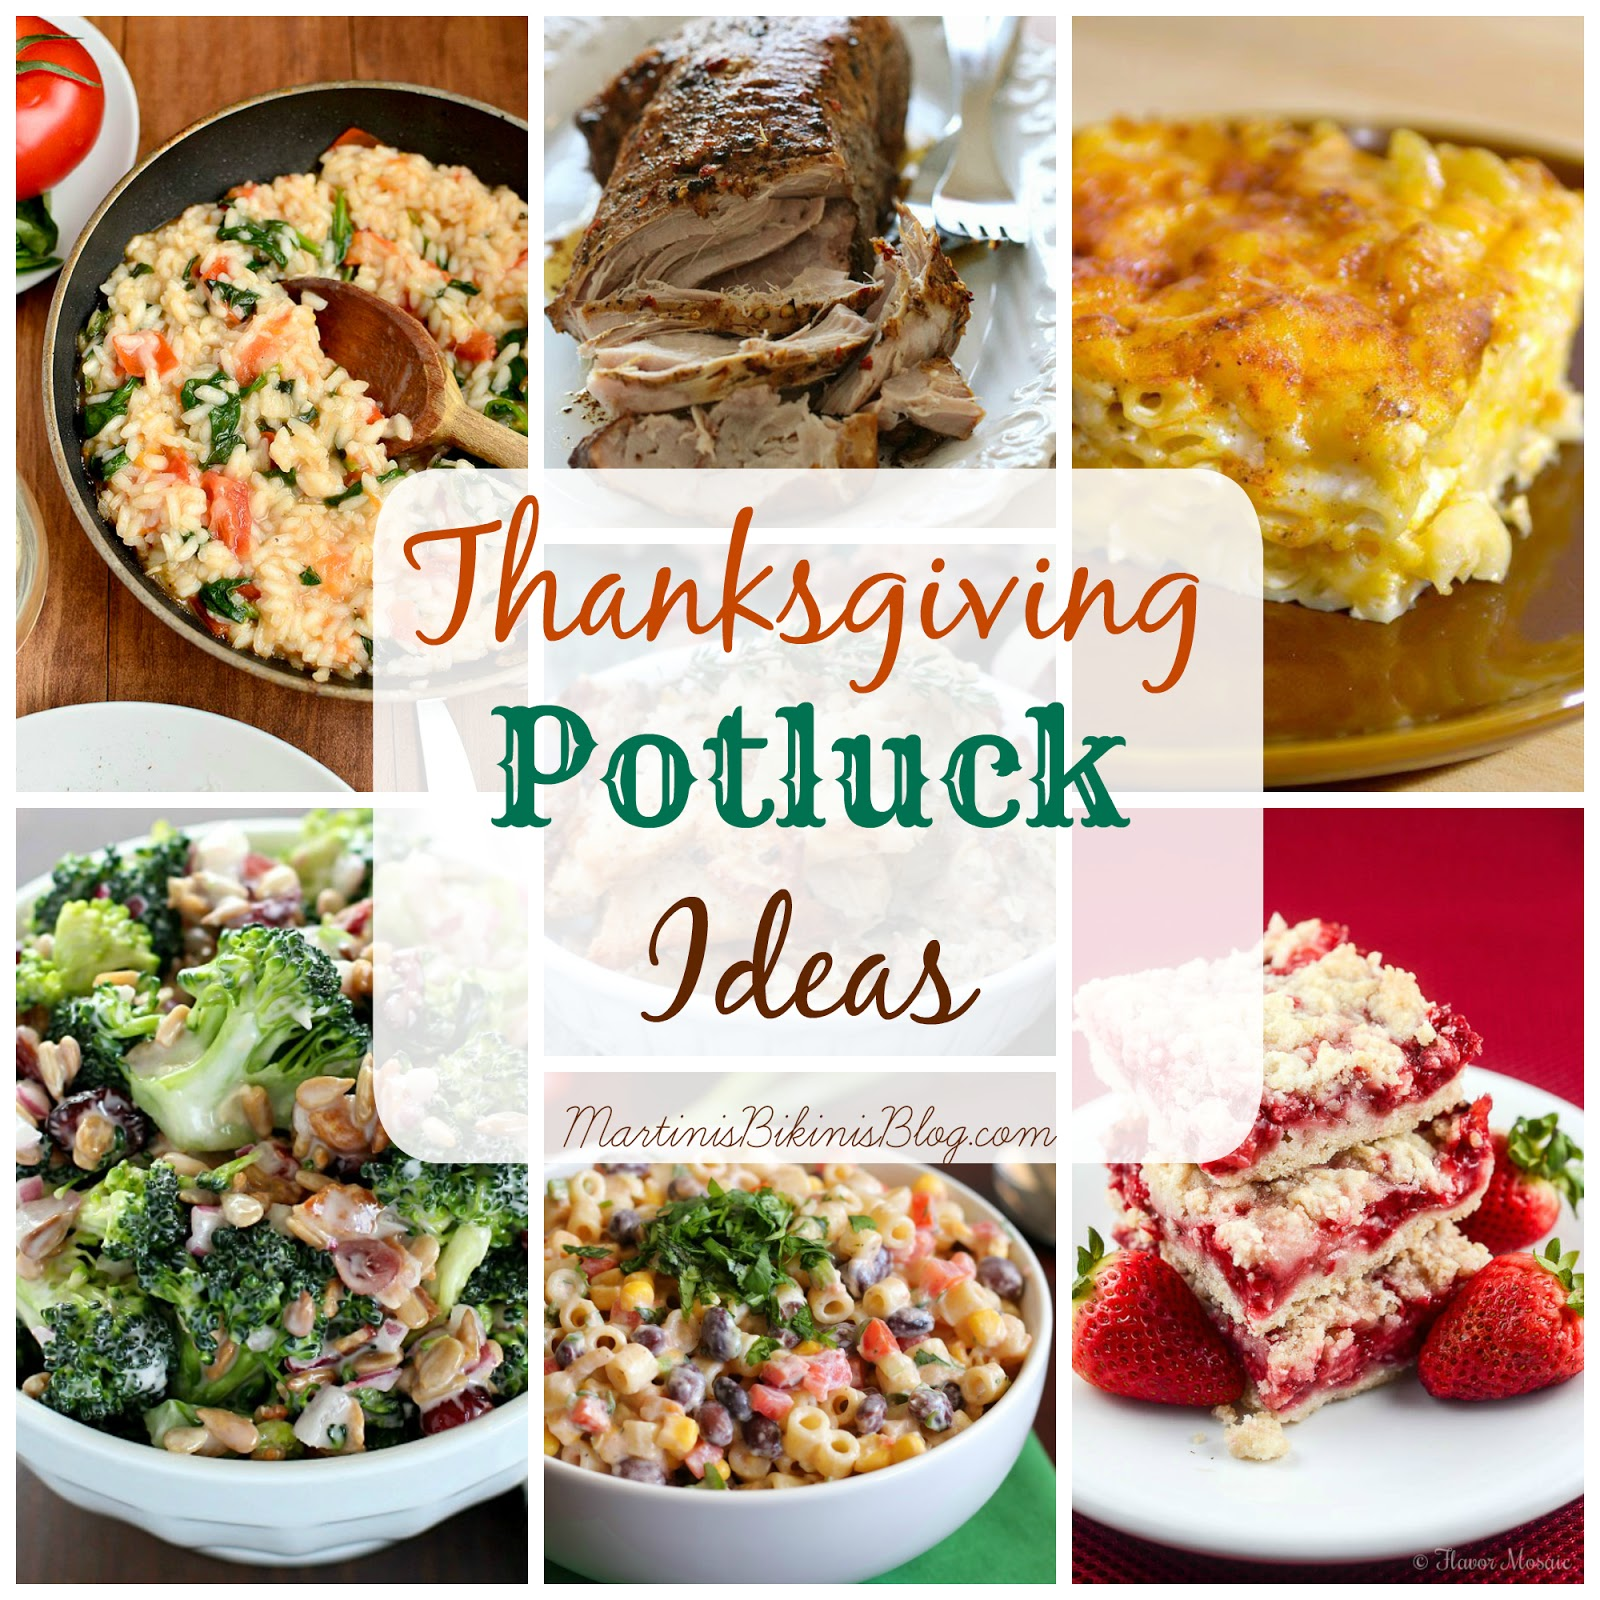 Thanksgiving Potluck Dish Ideas - Martinis